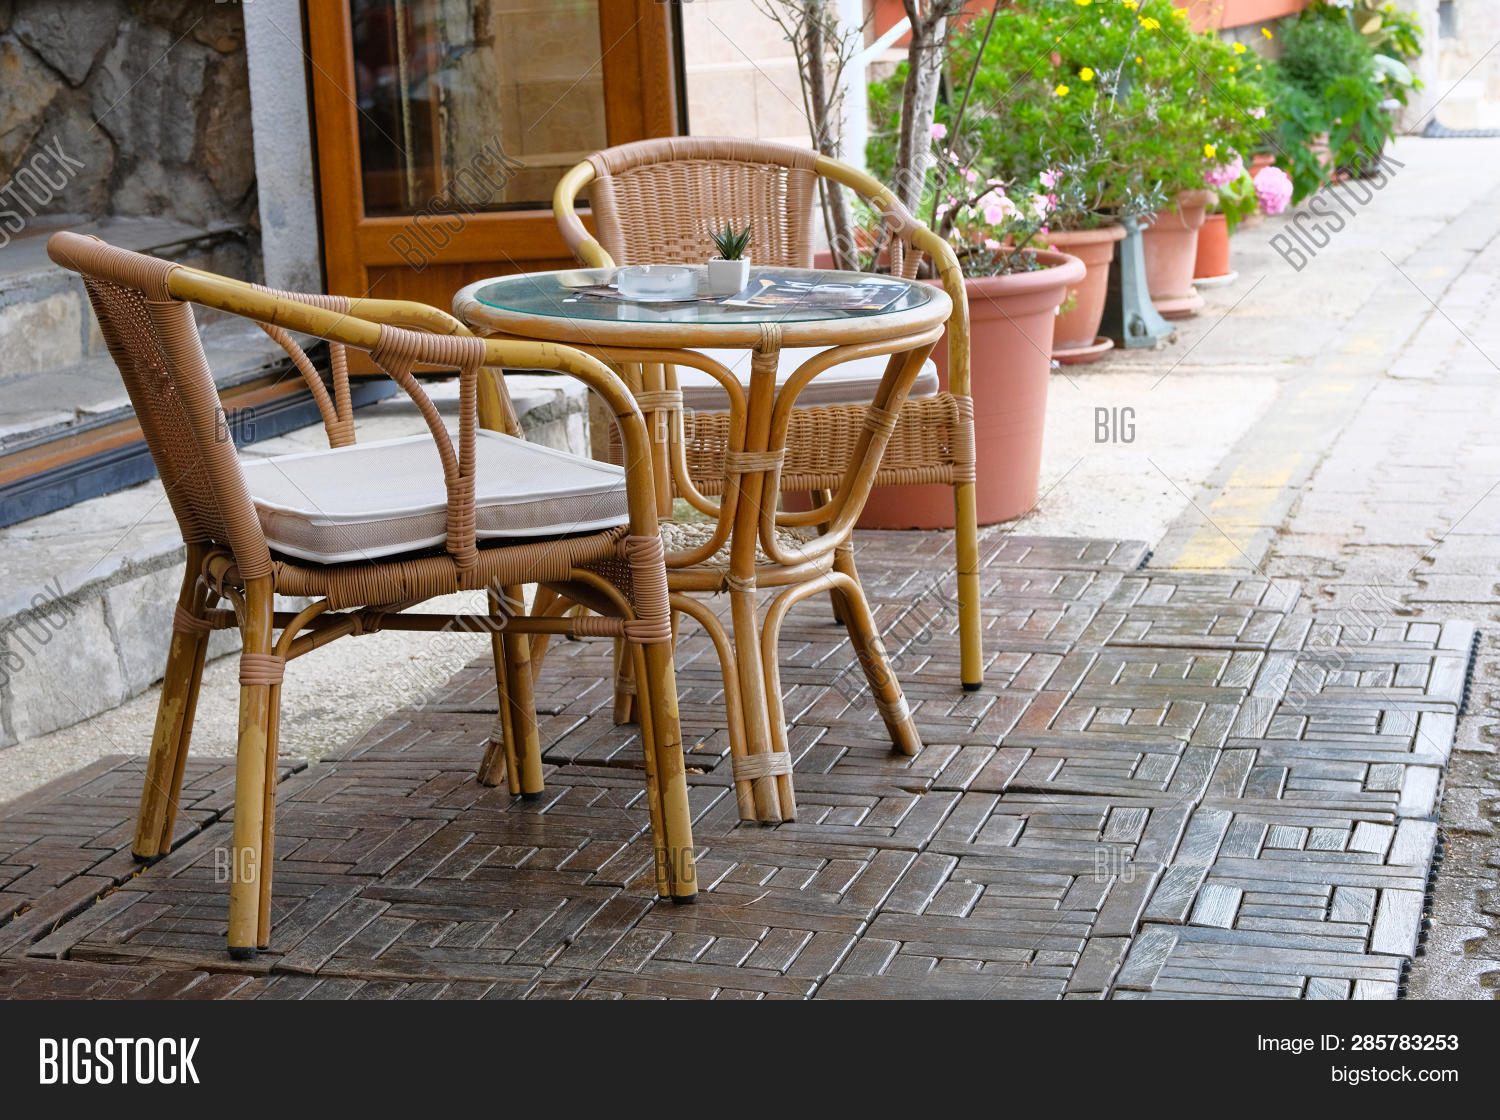 Rattan Table Chairs Image Photo Free Trial Bigstock